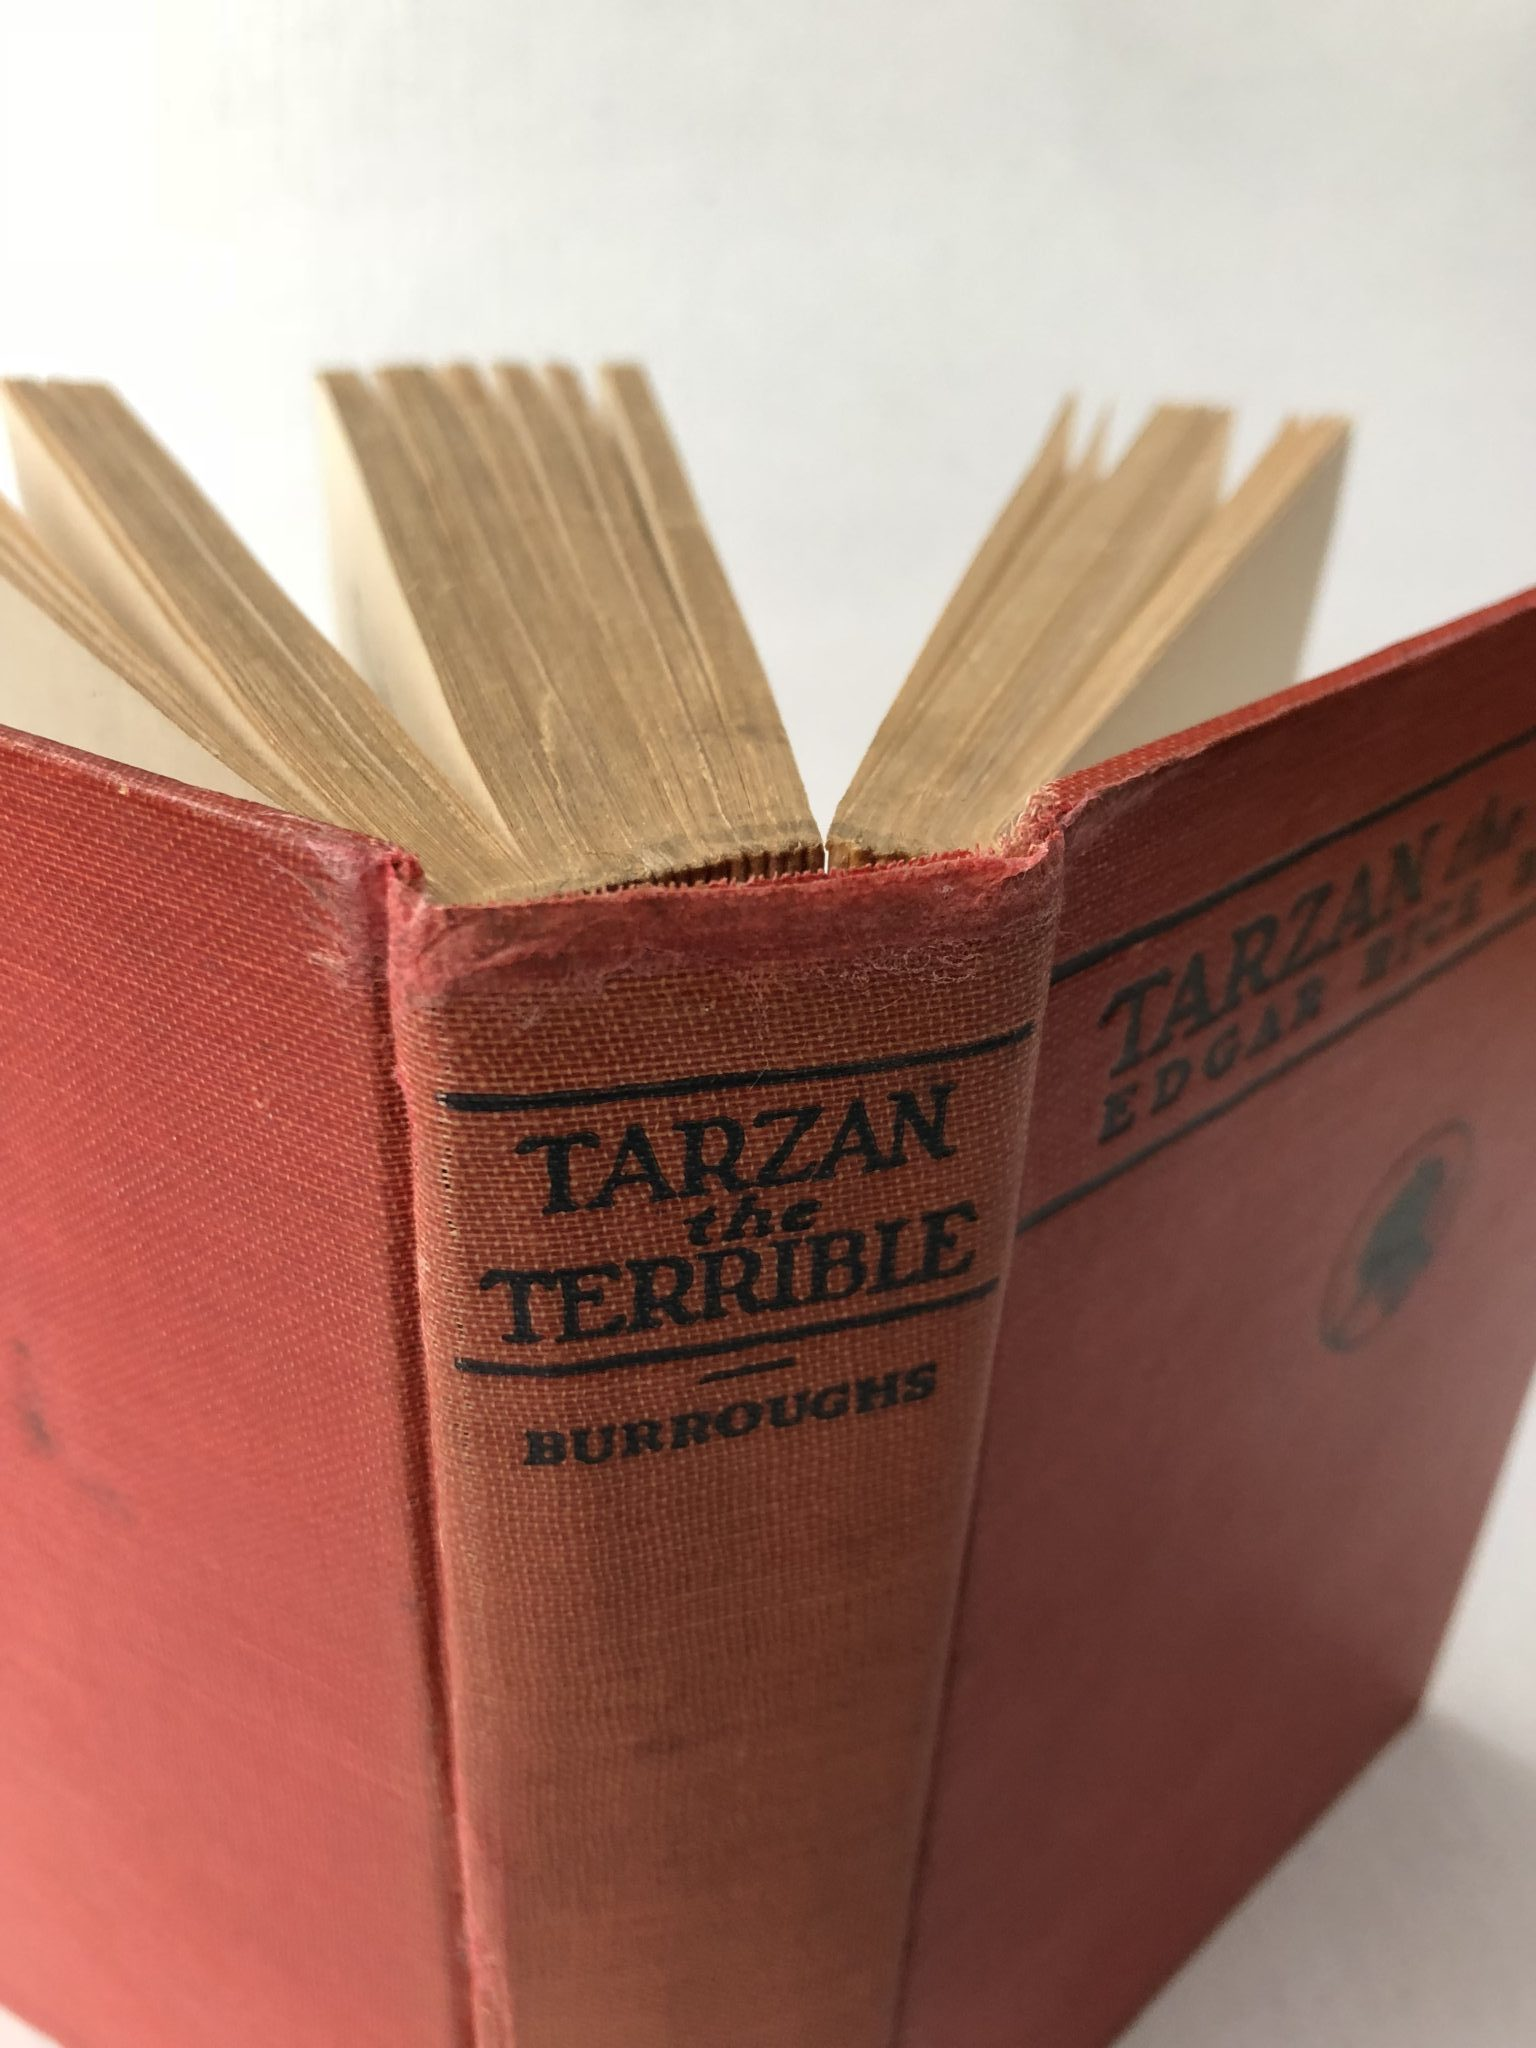 2-108b: Repair a Frayed Book Spine Head and Tail ~ $9.99